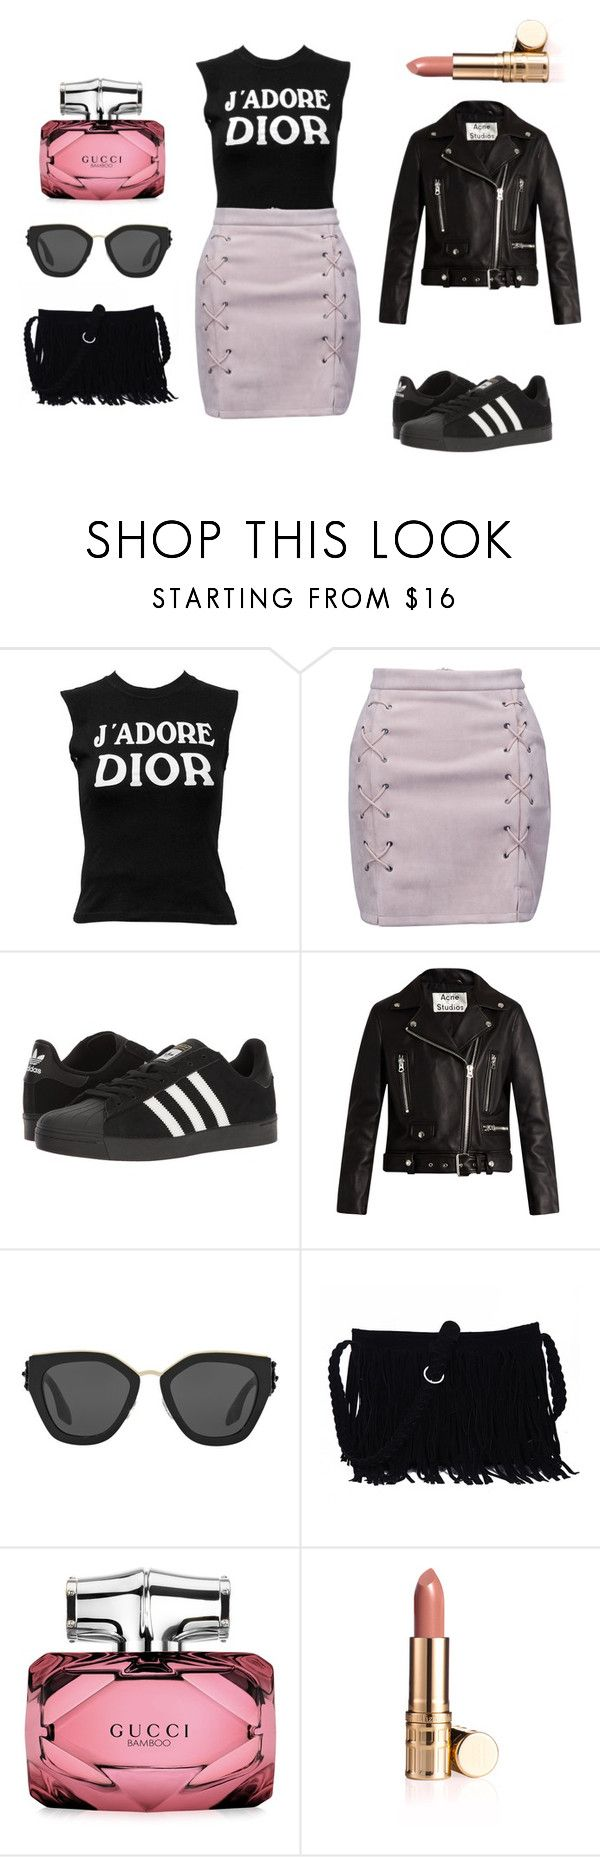 """J`adore"" by tovenilsen on Polyvore featuring Christian Dior, WithChic, adidas, Acne Studios, Prada and Gucci"